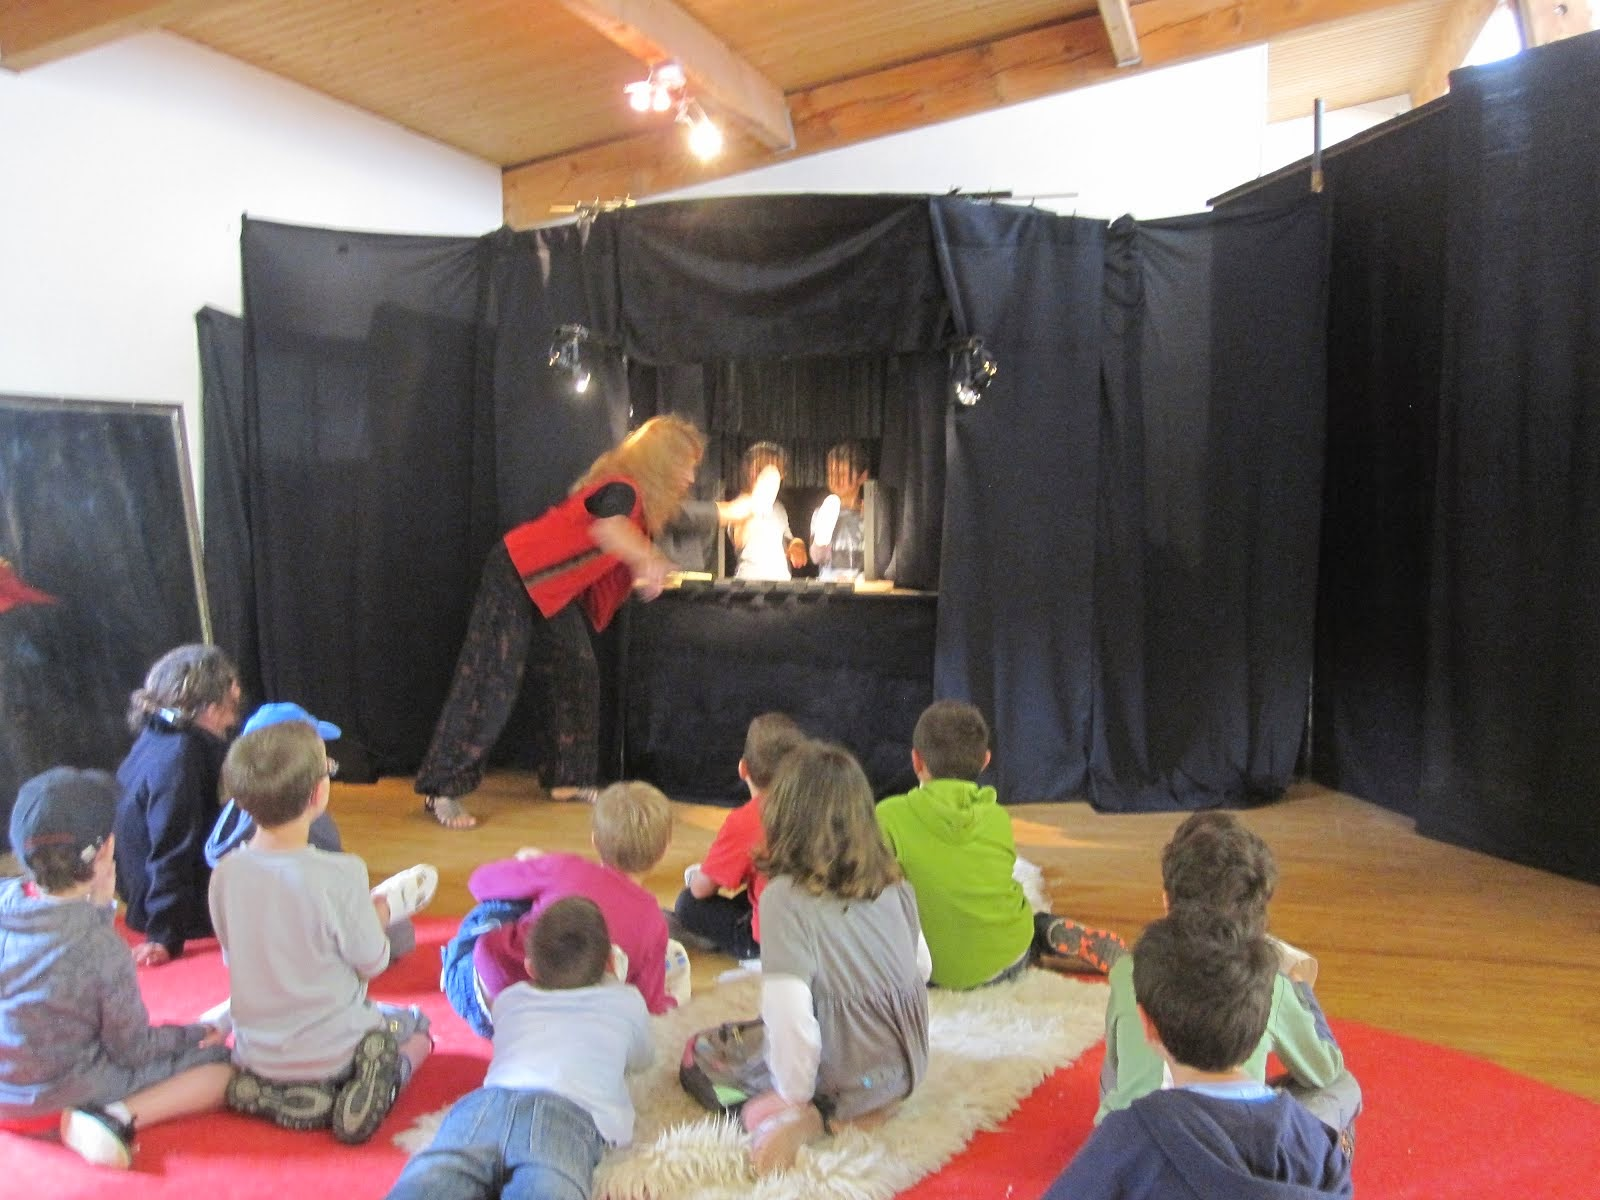 Spectacle à la maison devant 2 classes de maternelle